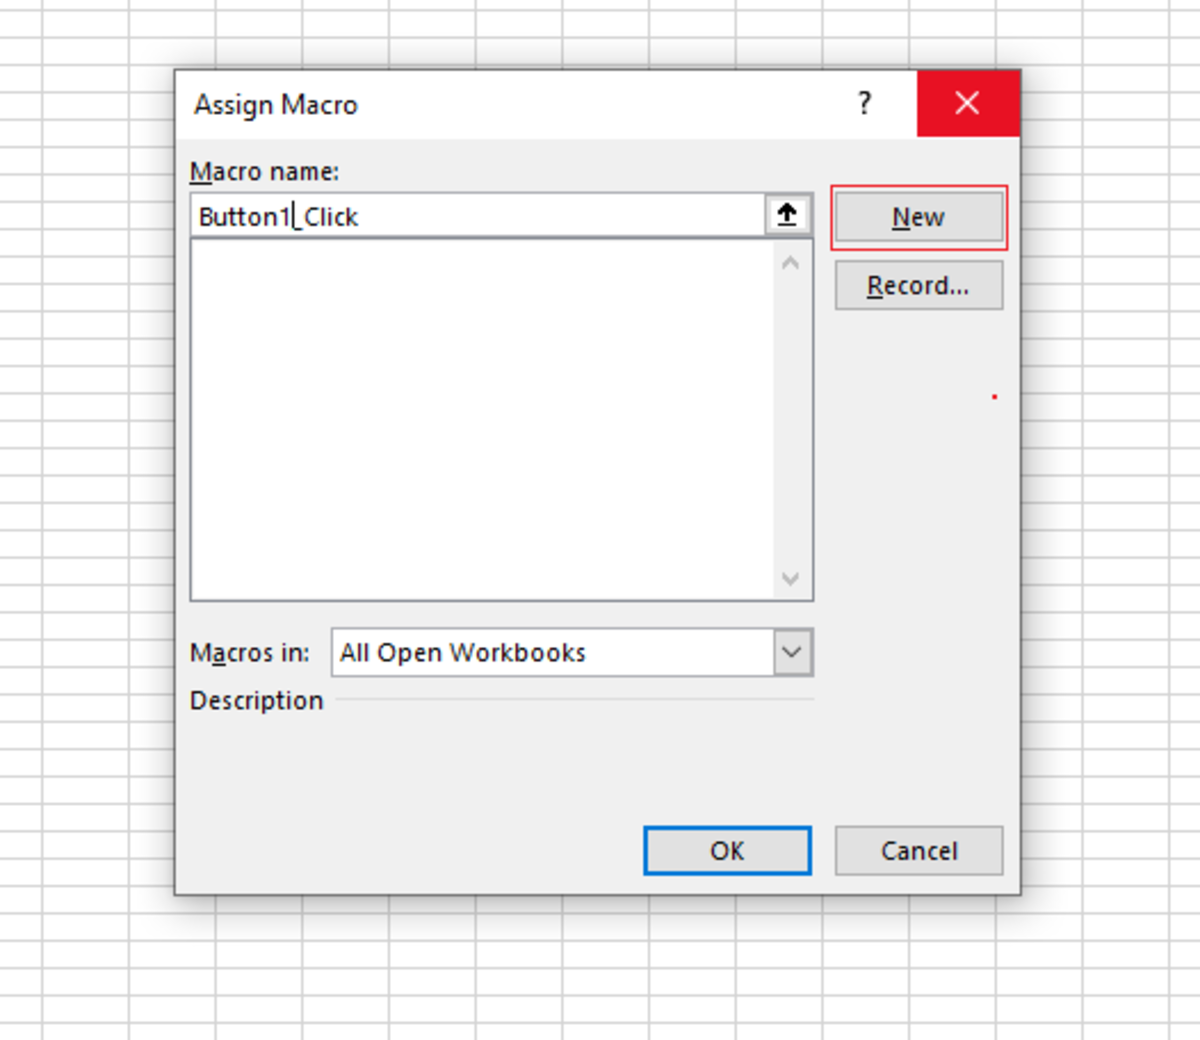 You also have to record macro option. With this option you would click a record button, record yourself clicking sheet tab, and clicking a stop button to end the recording. This is another option to assigning the macro to the button.